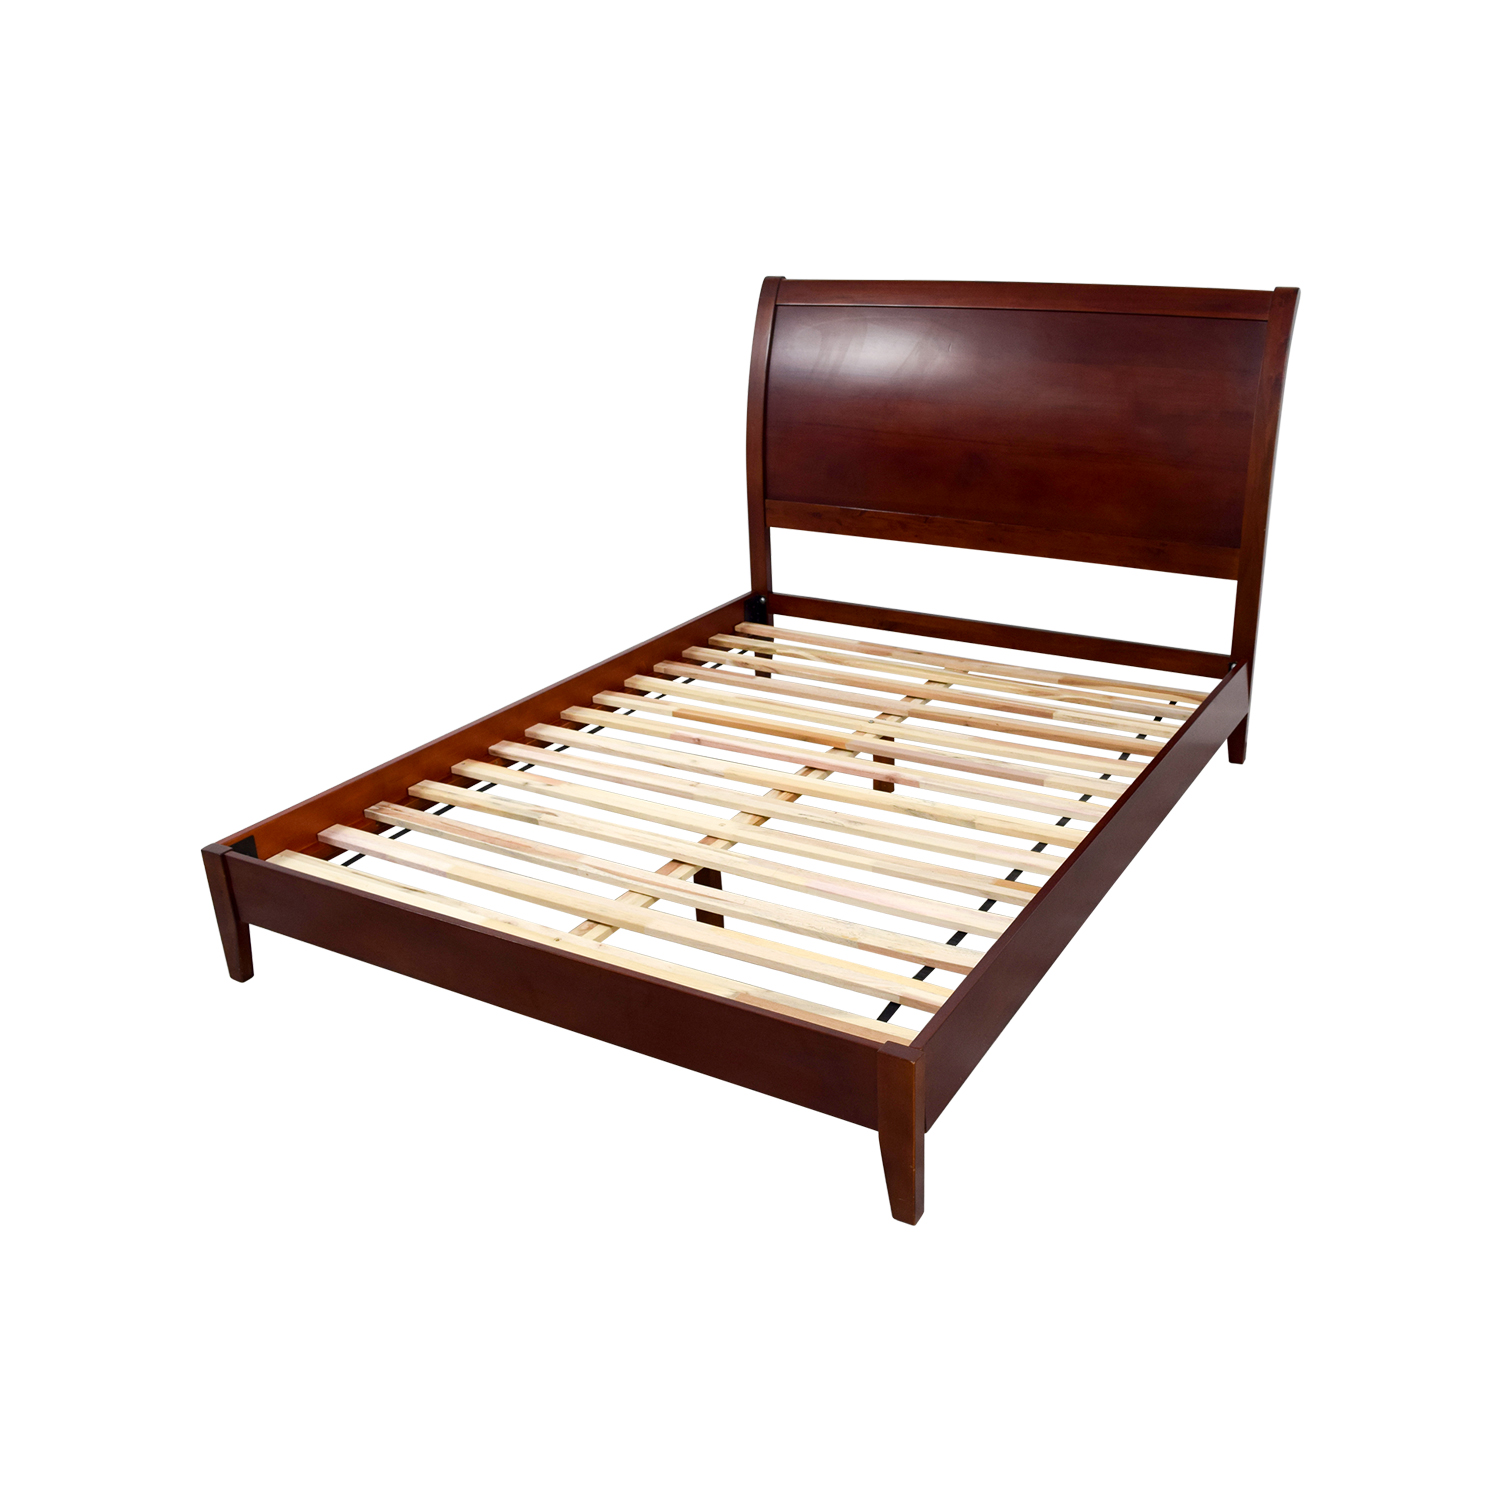 sleepys ideas image of sleepy sale bed size new frame mattress s beds ikea